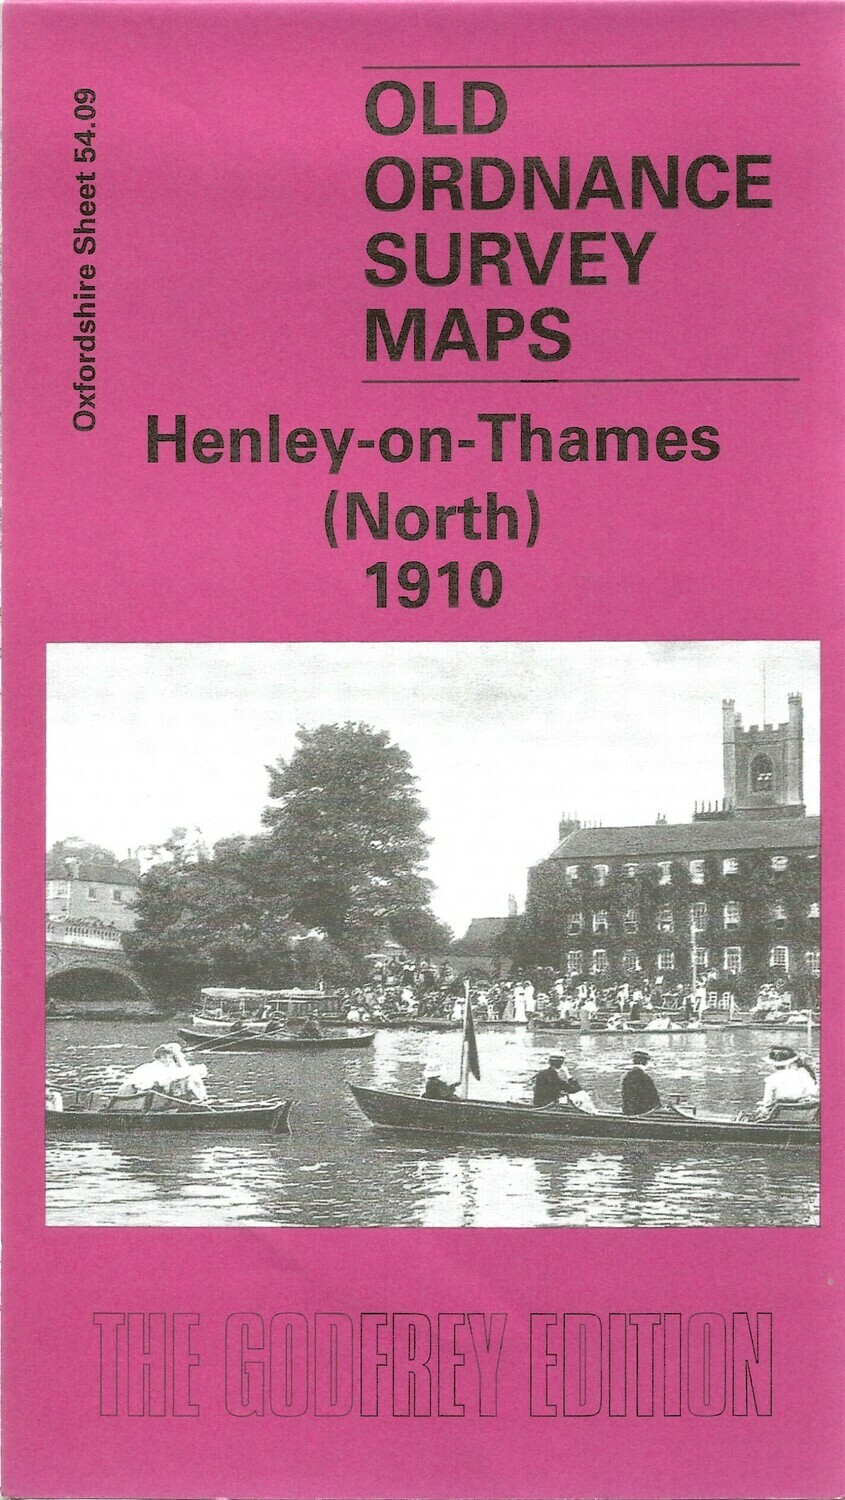 Henley-on-Thames (North) 1910